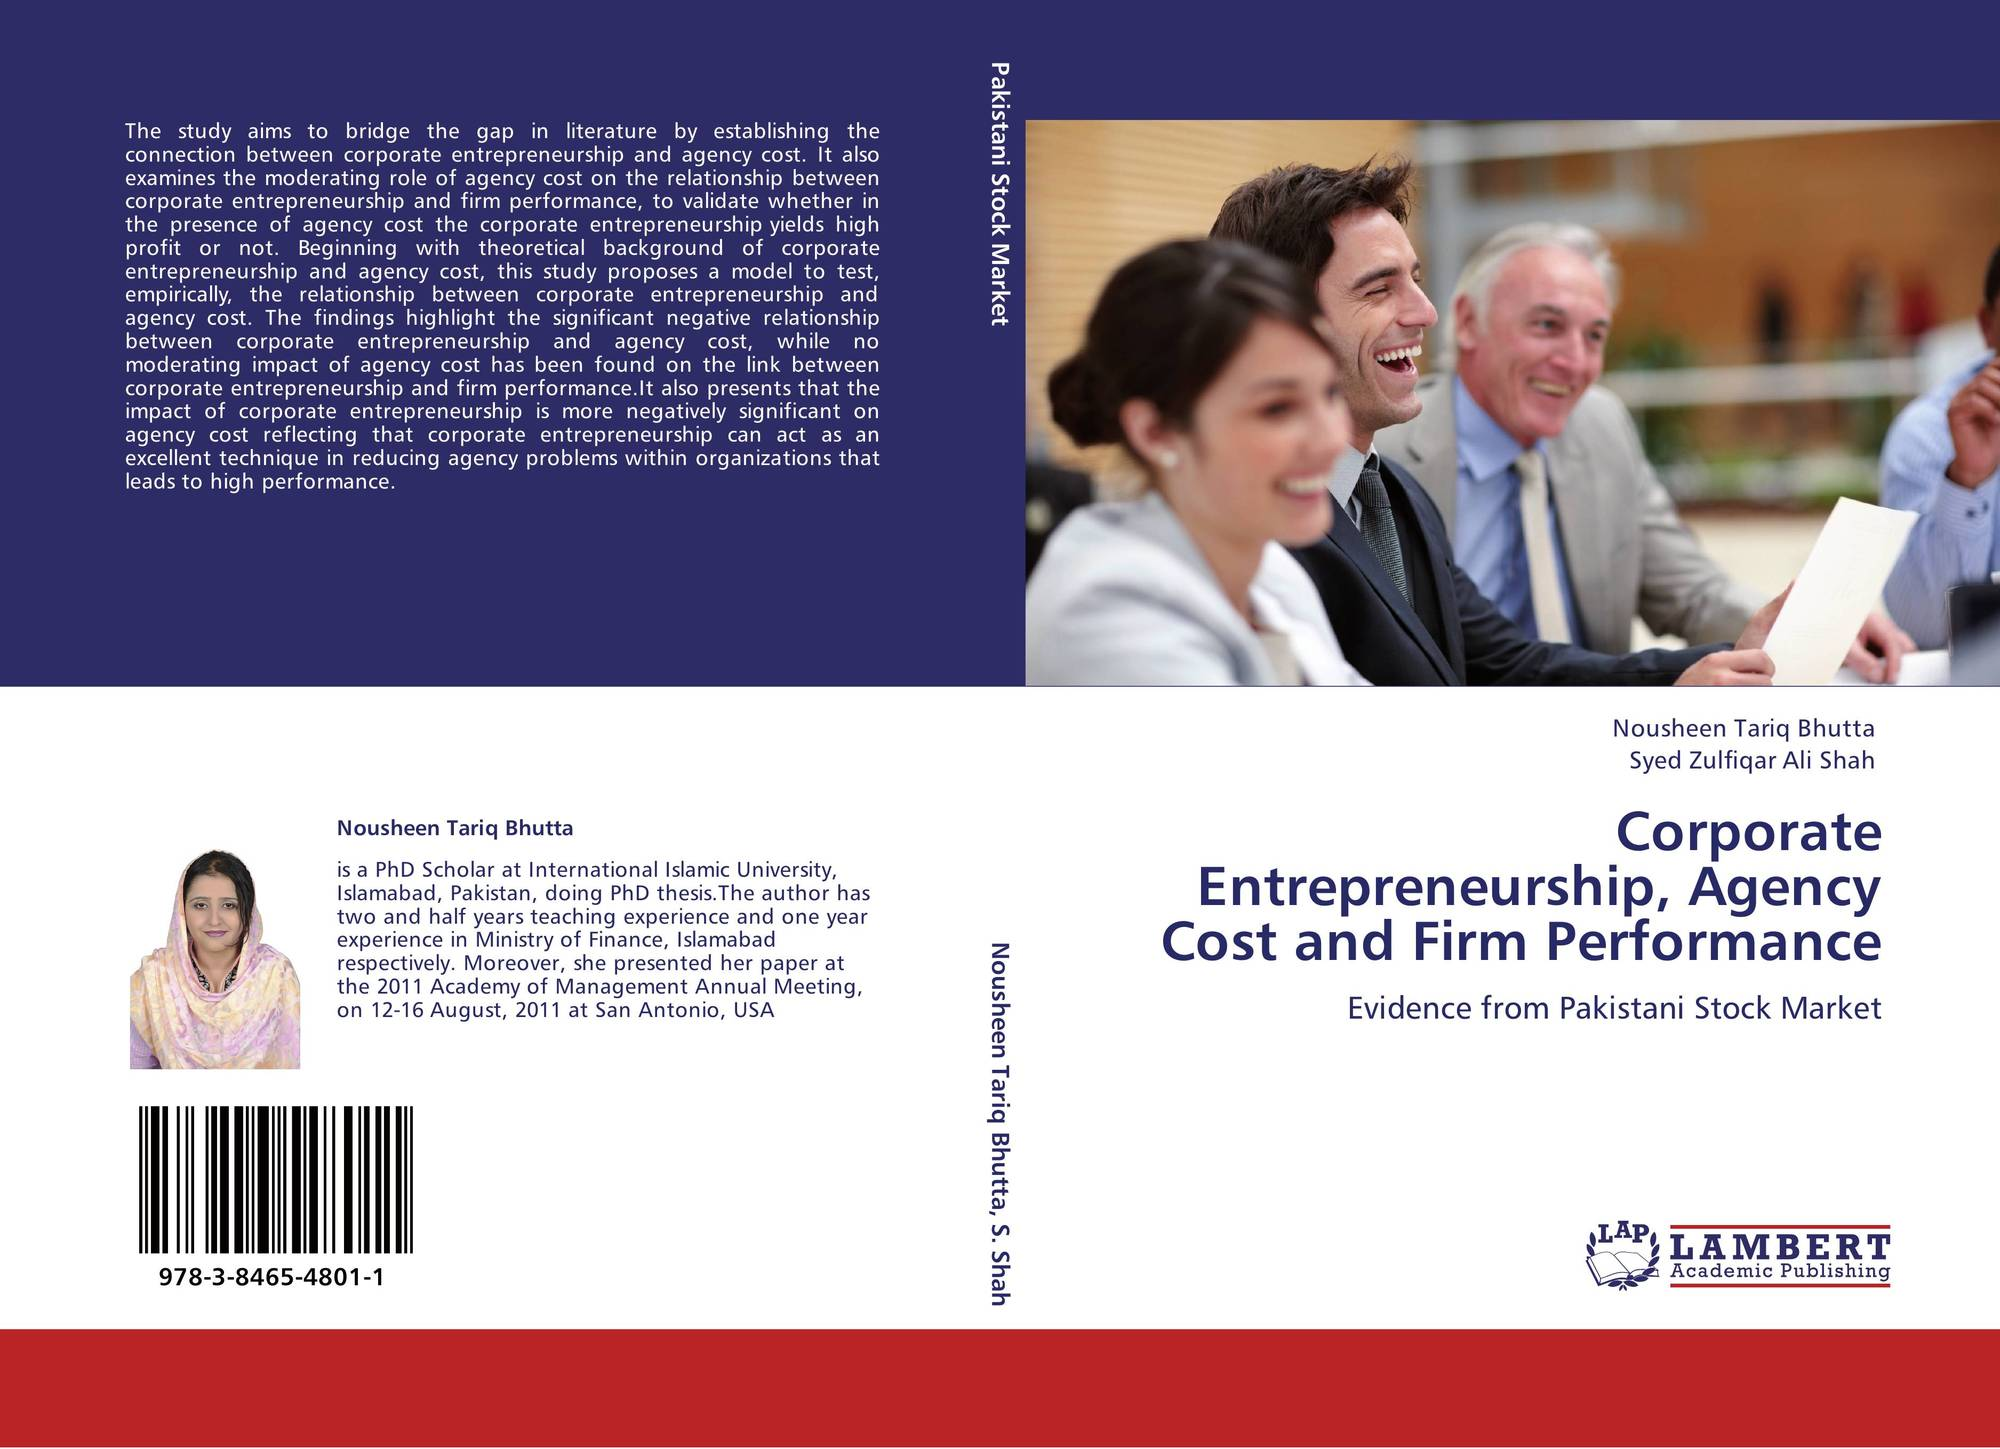 reflection paper on corporate entrepreneurship Reflection paper i am pleased to reflect on my experience this semester in business management 3510 i feel that it was a successful class which taught me a lot regarding how to function in a team and as an individual.